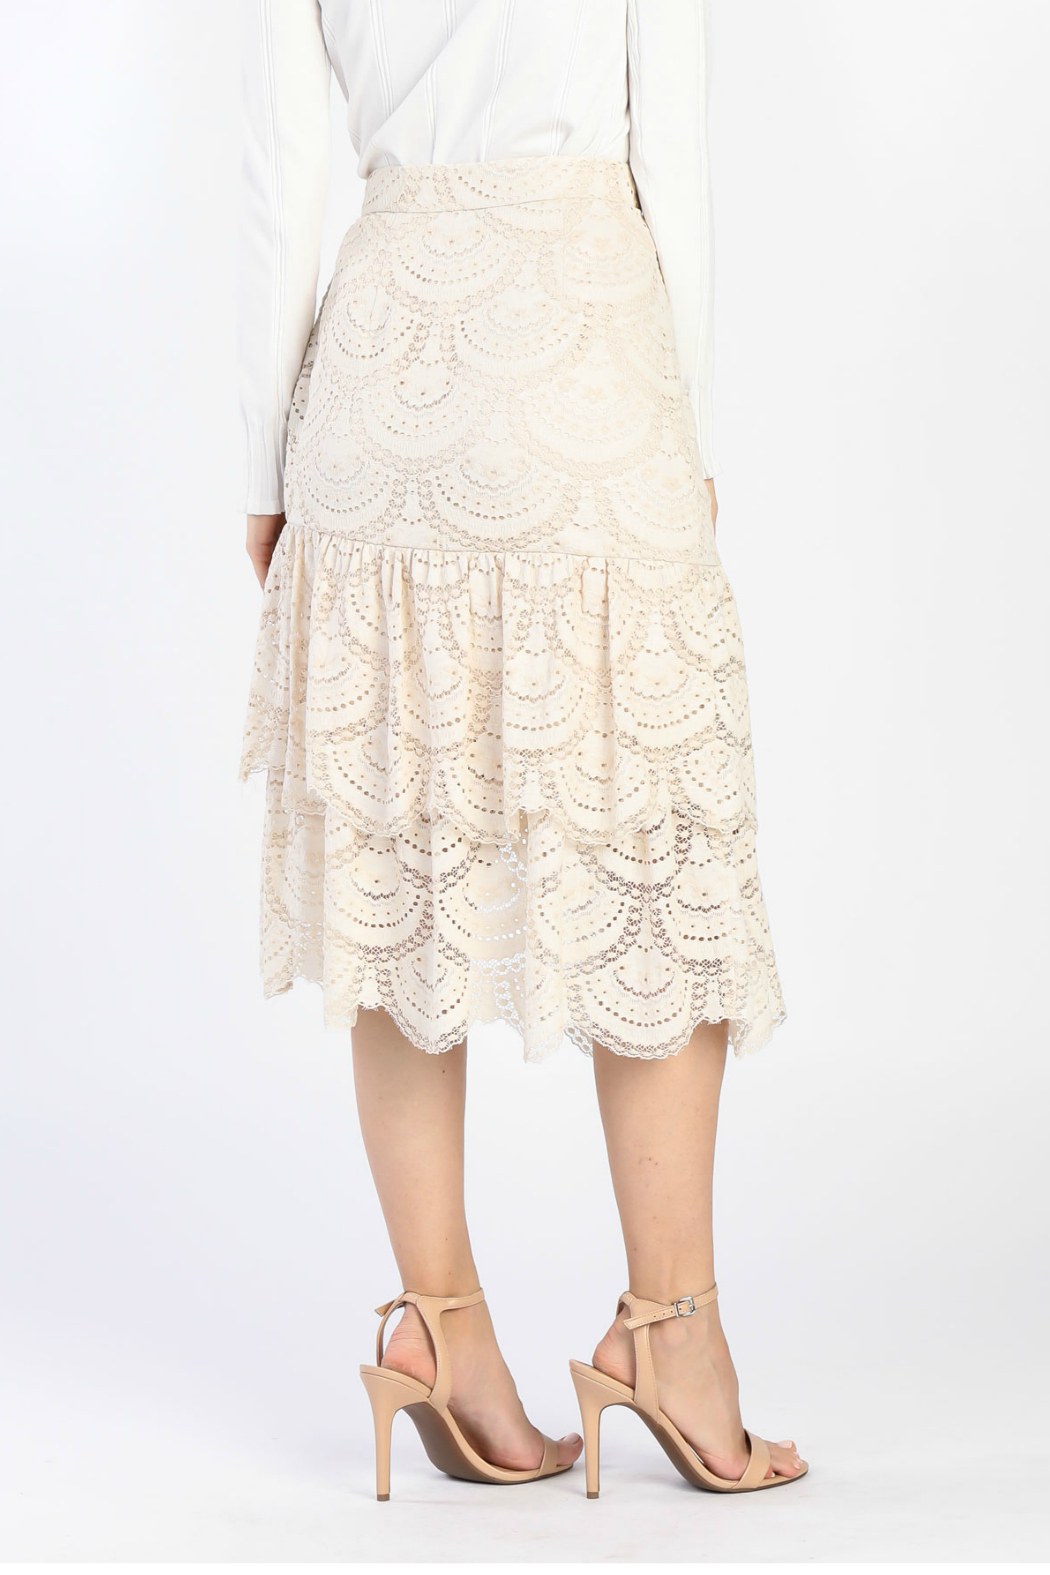 Current Air Tiered Ruffle Lace Skirt - Front Full Image